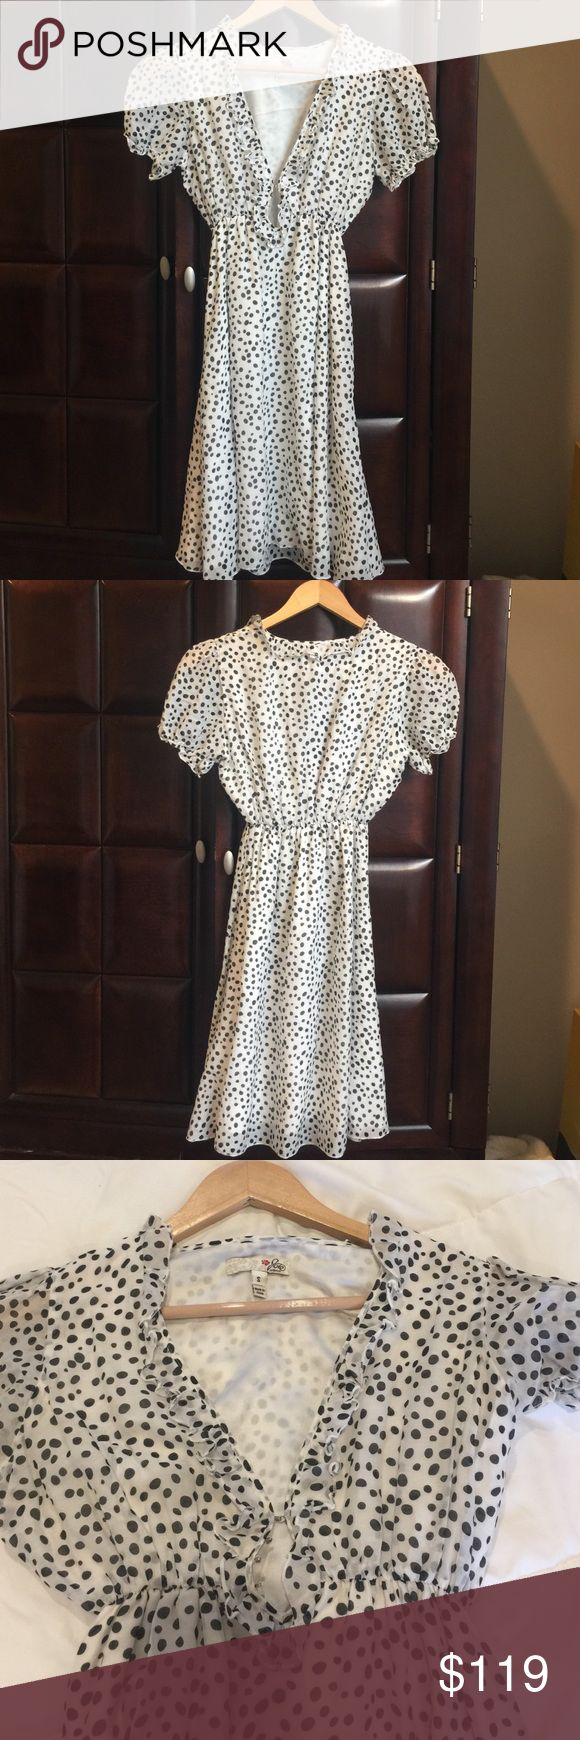 Joie | Dress/tunic | Small Joie black and white polka dot dress size small, cotton/silk material. Hook and eye on front, rouching at the waist and ruffle at the neckline Joie Dresses